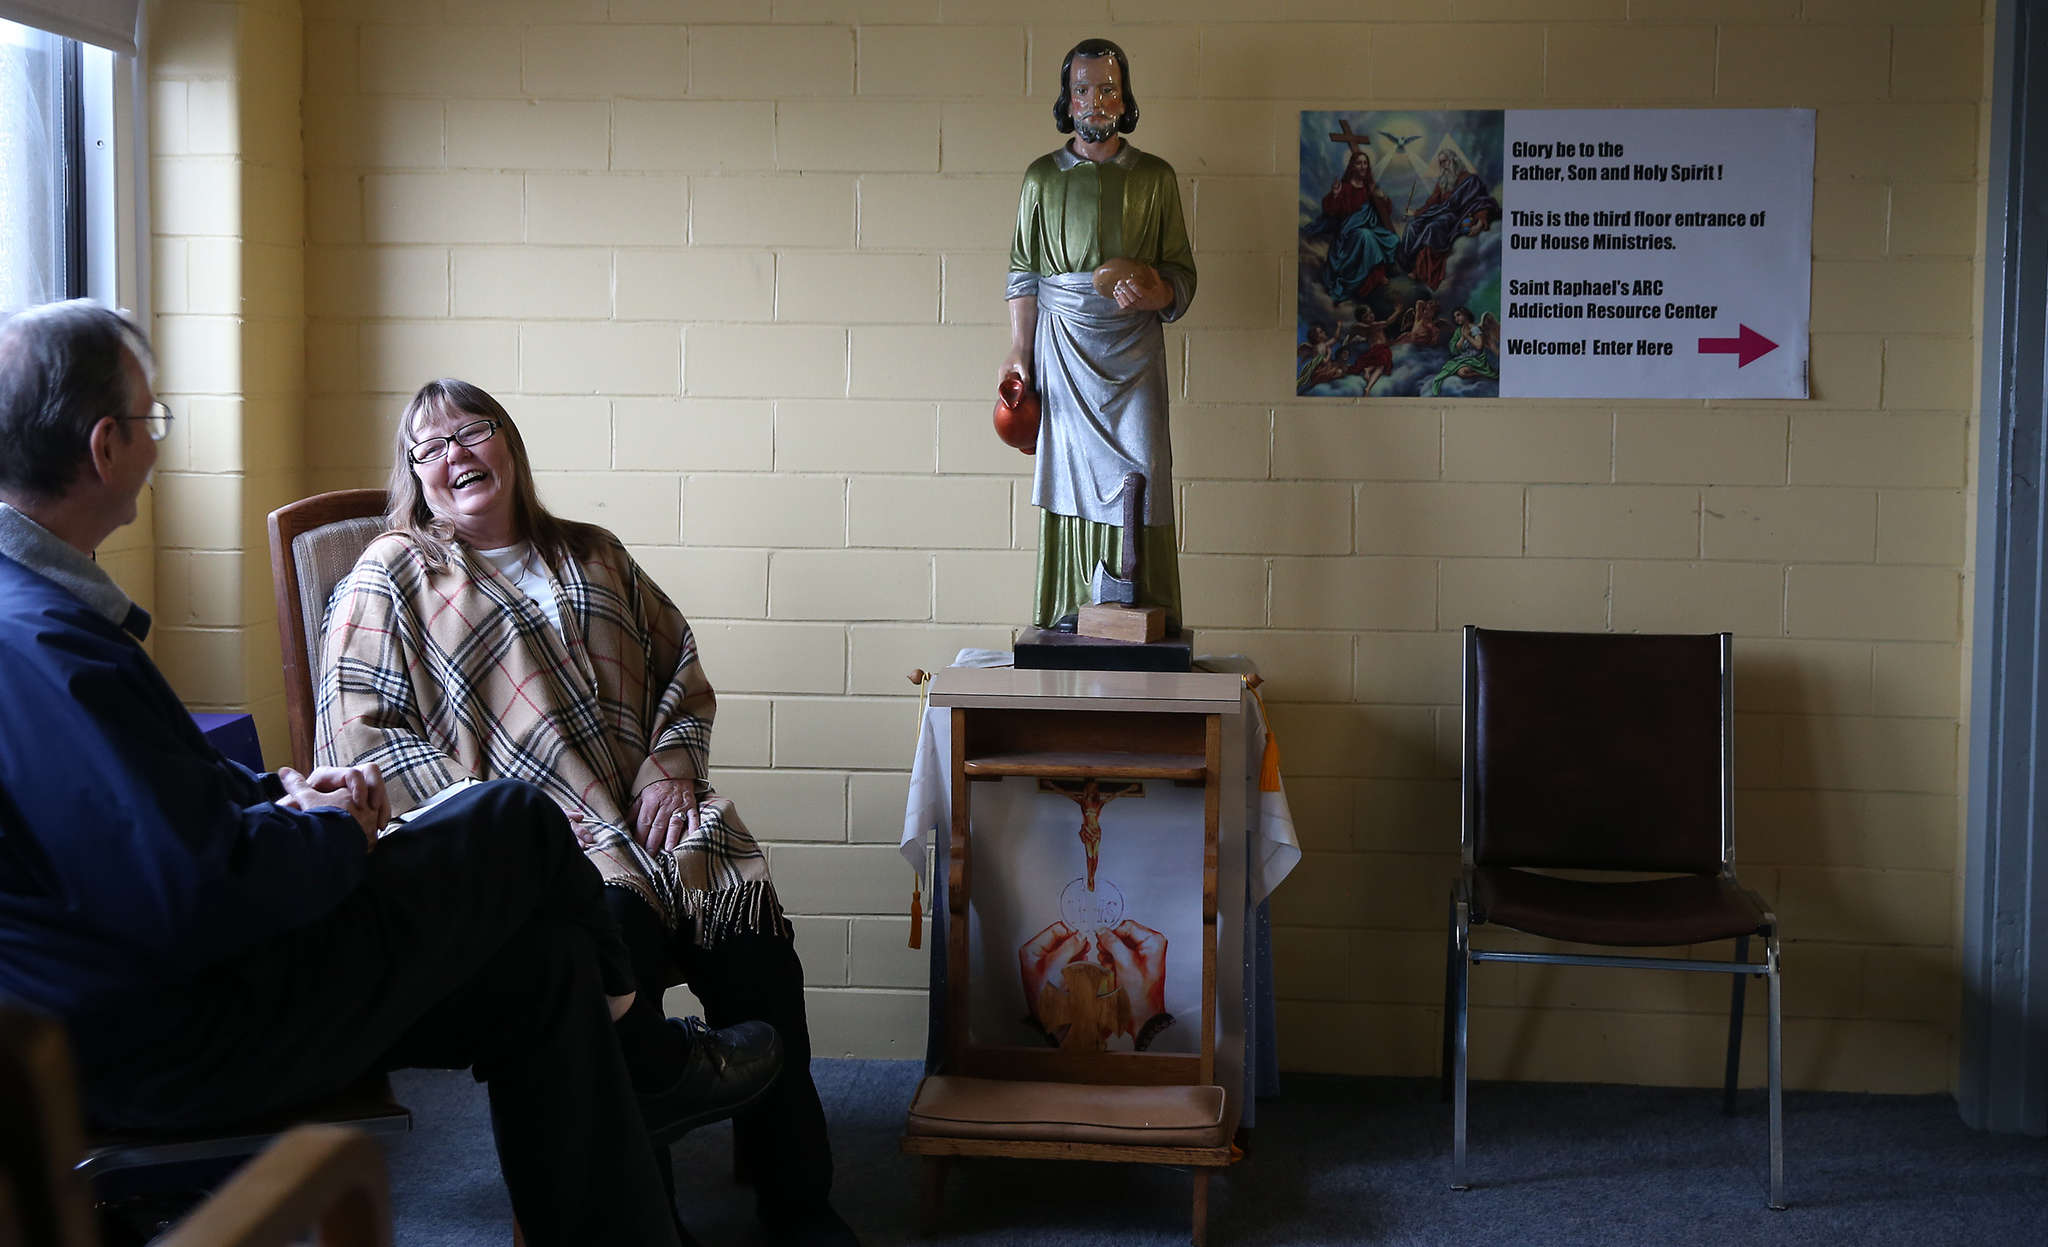 DAVID MAIALETTI / STAFF PHOTOGRAPHER Father McKay talks with volunteer Kathy Diering, who runs the facility to help addicted women.